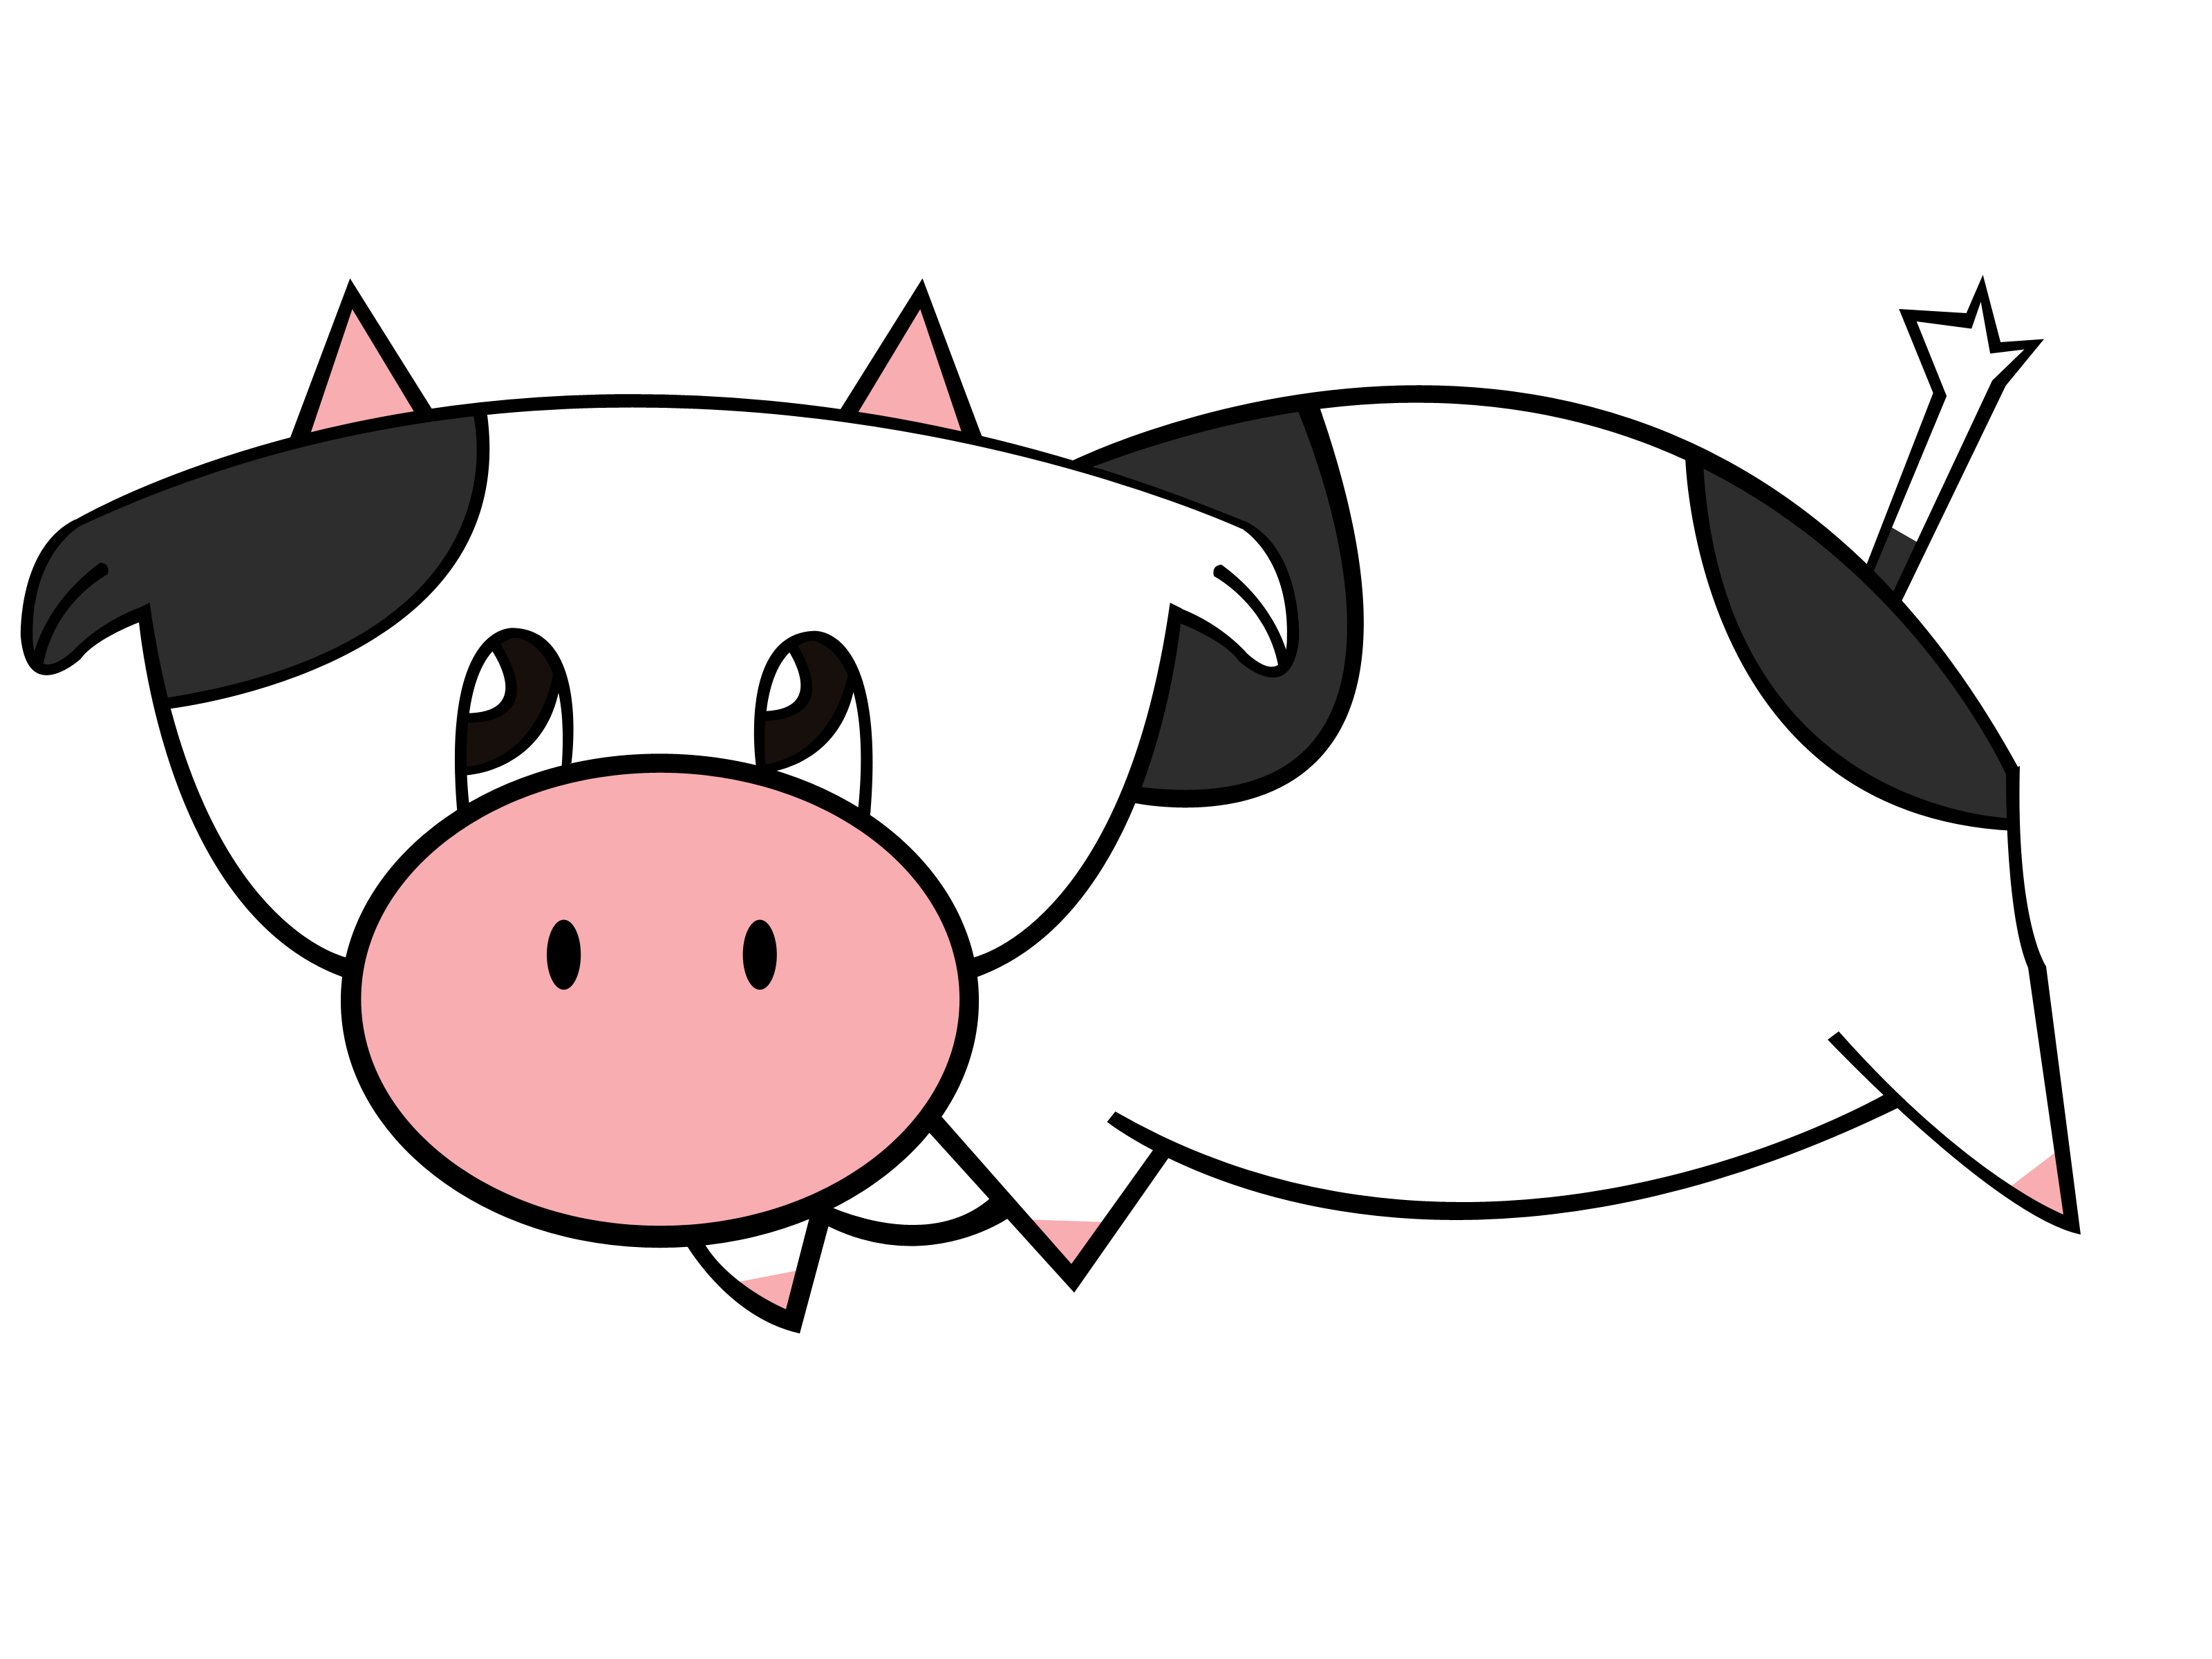 How To Draw A Cow For Kindergarteners - ClipArt Best